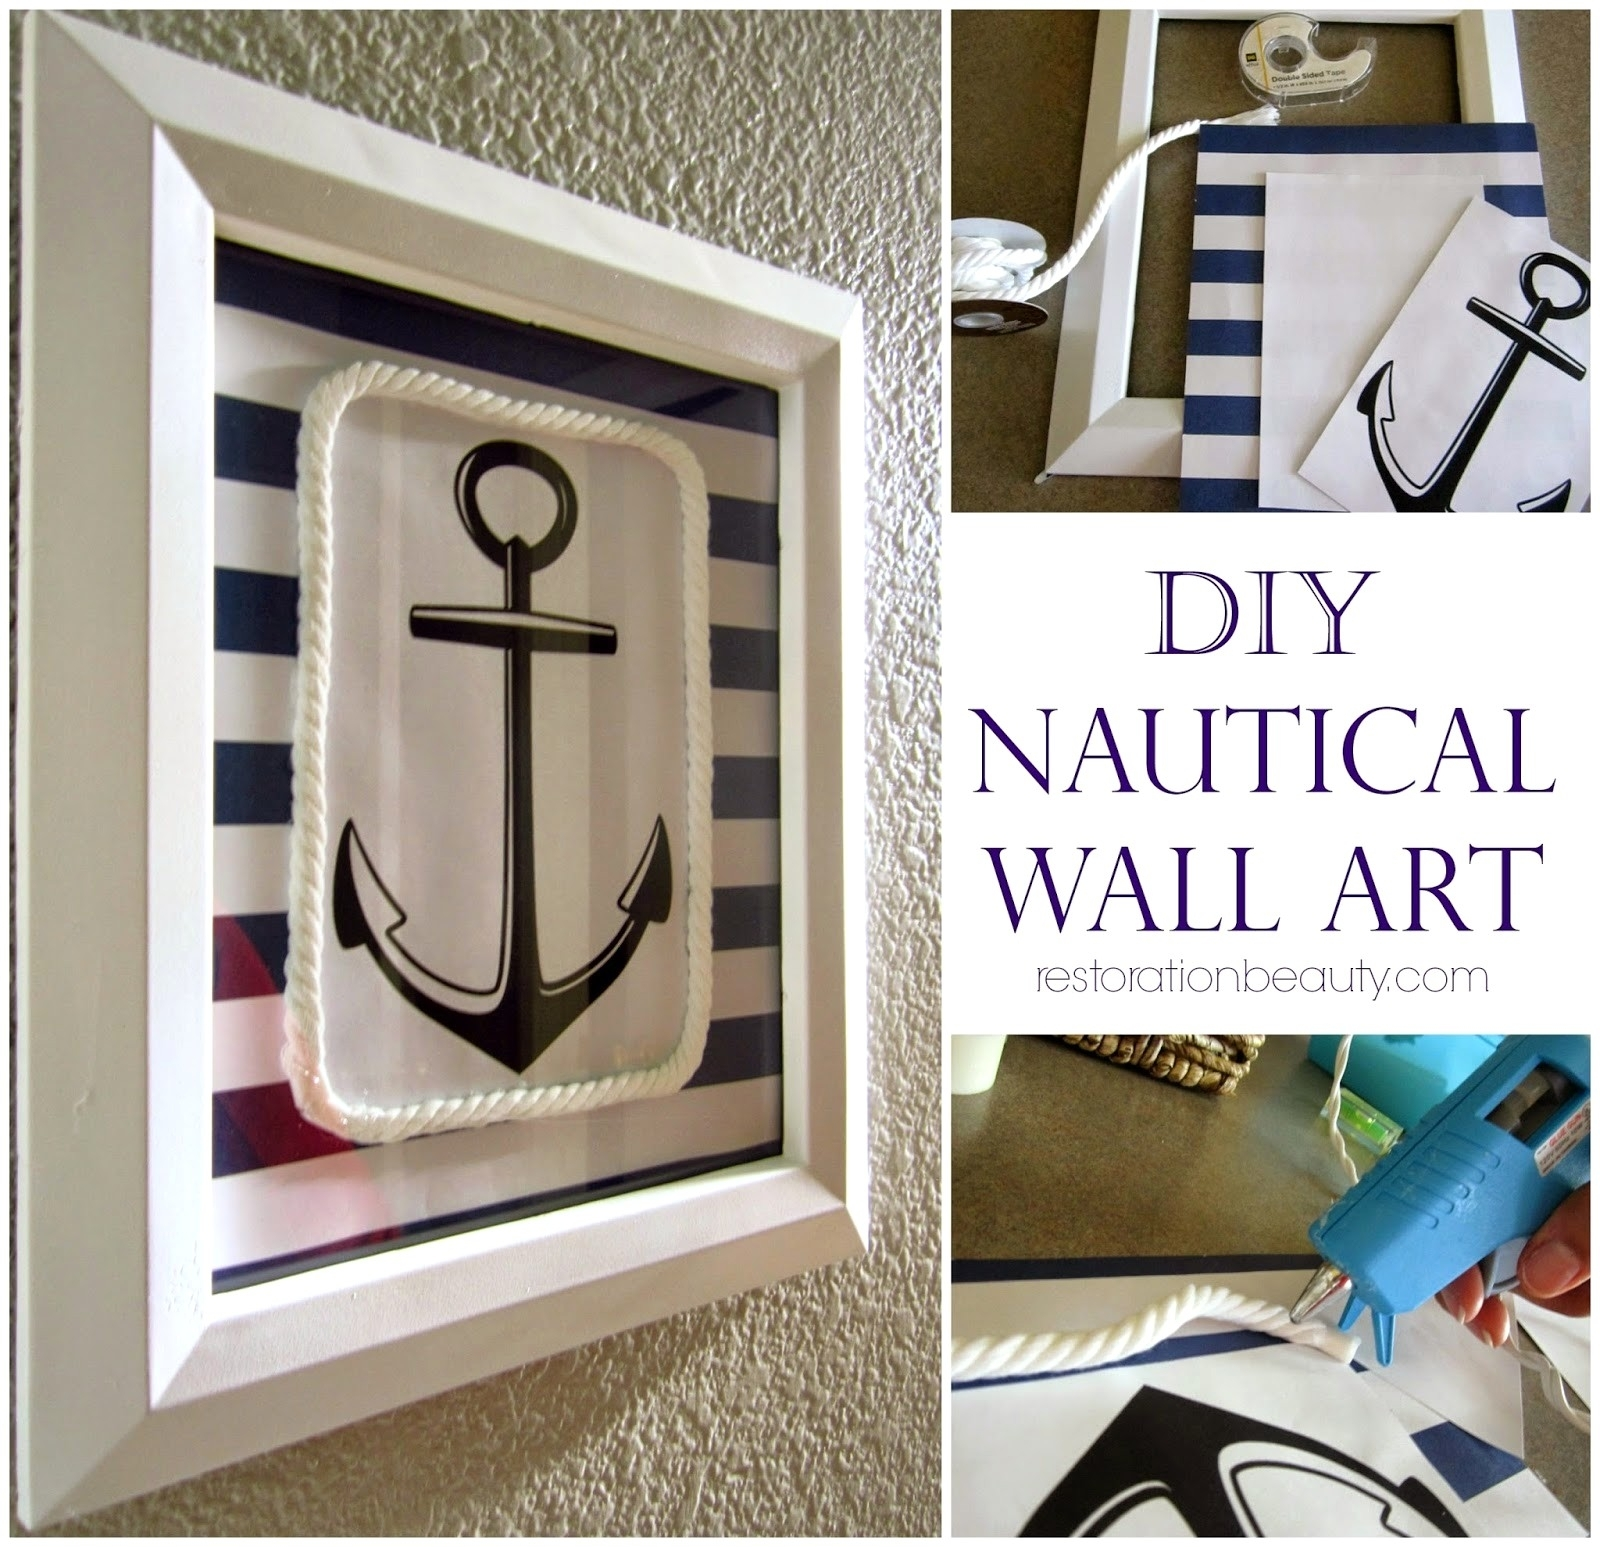 Diy Nautical Wall Art 17 Anchor Decor | Albertstreetmotors Pertaining To Most Current Nautical Wall Art (View 3 of 15)